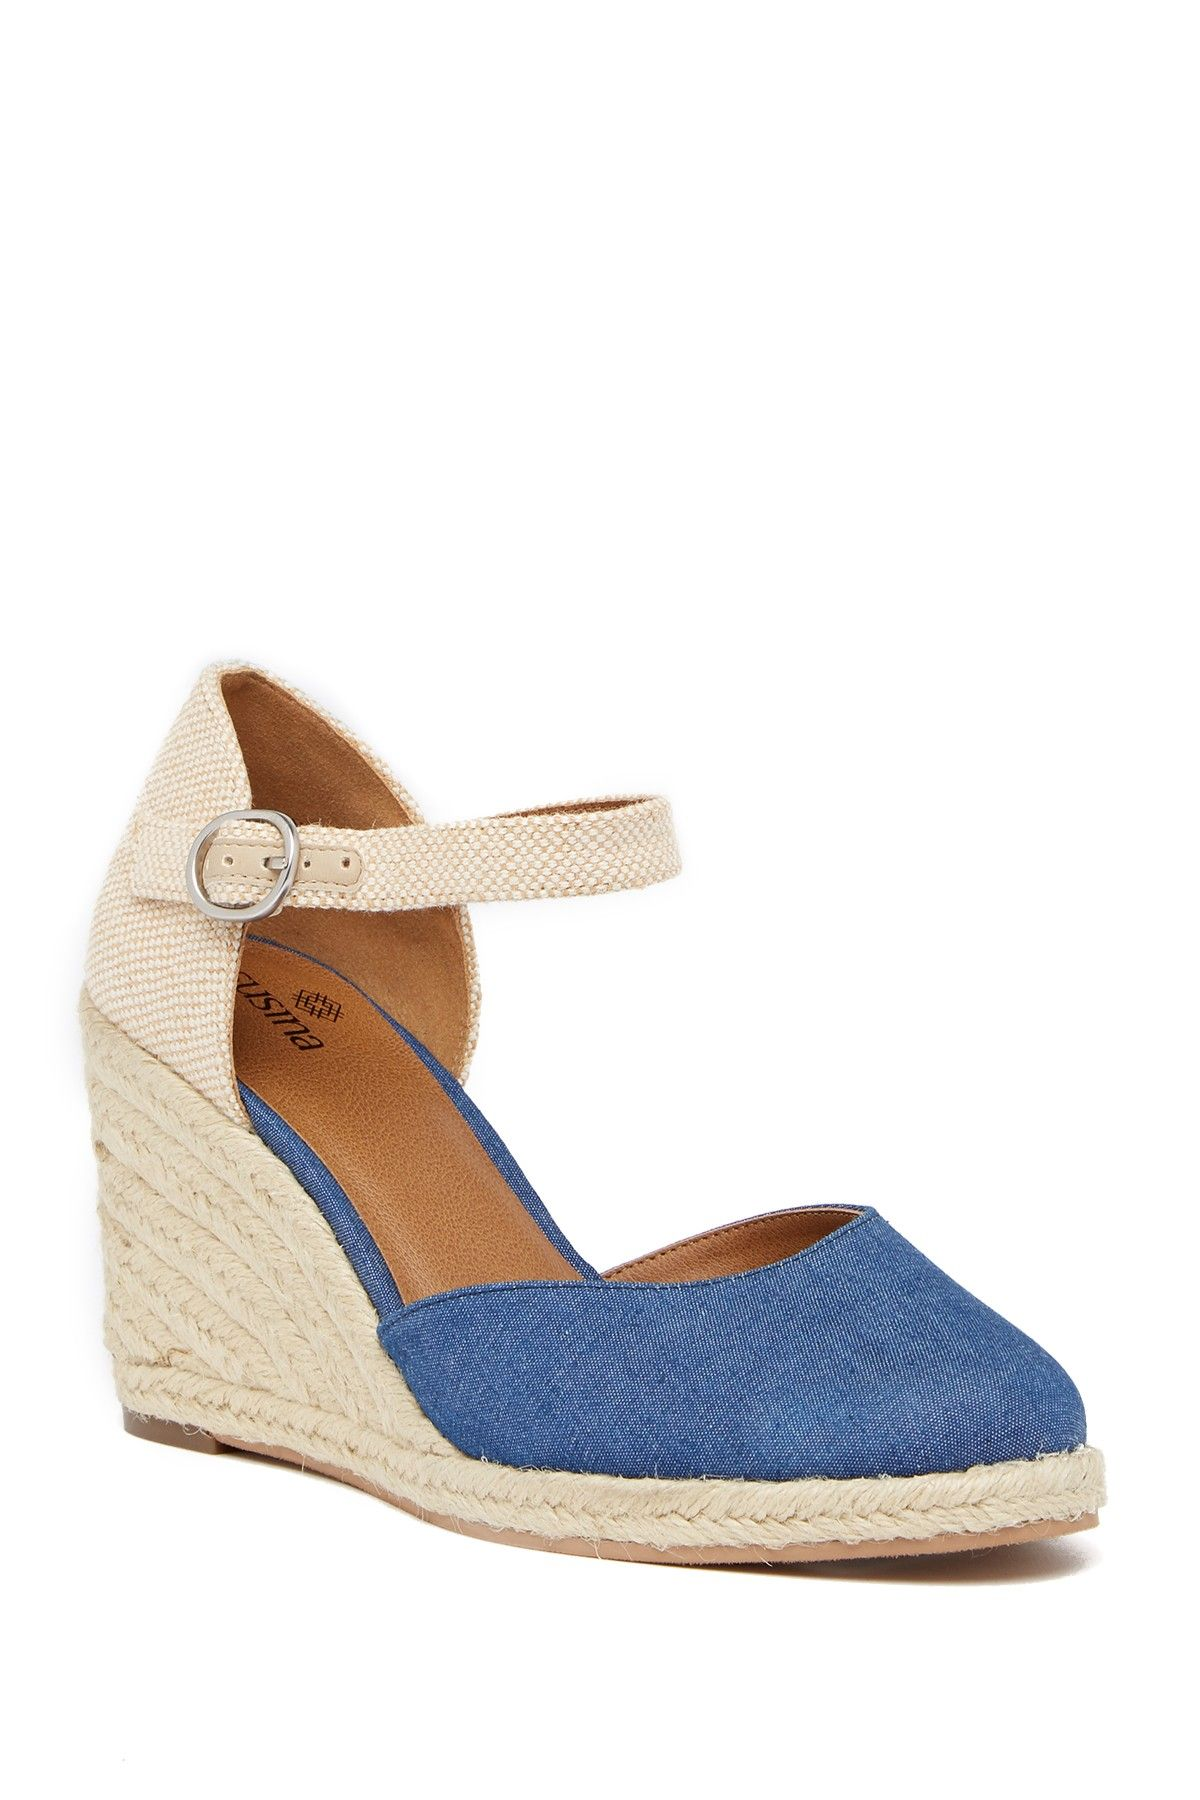 44eaa16b20e Lily Ankle Strap Wedge Sandal